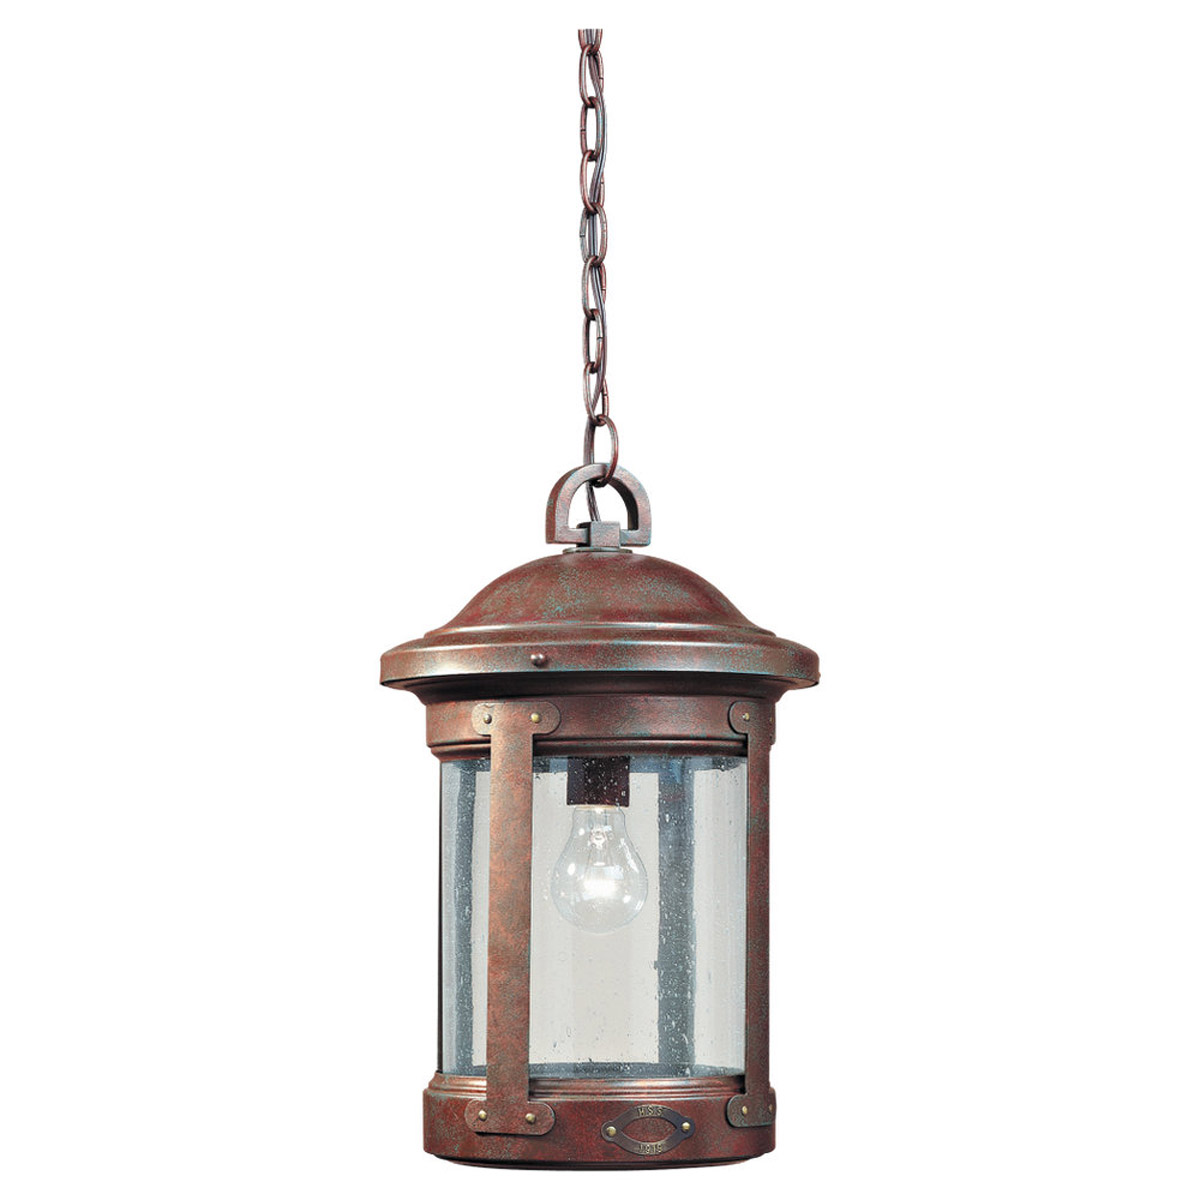 Sea Gull Lighting HSS CO-OP 1 Light Outdoor Pendant in Weathered Copper 6041-44